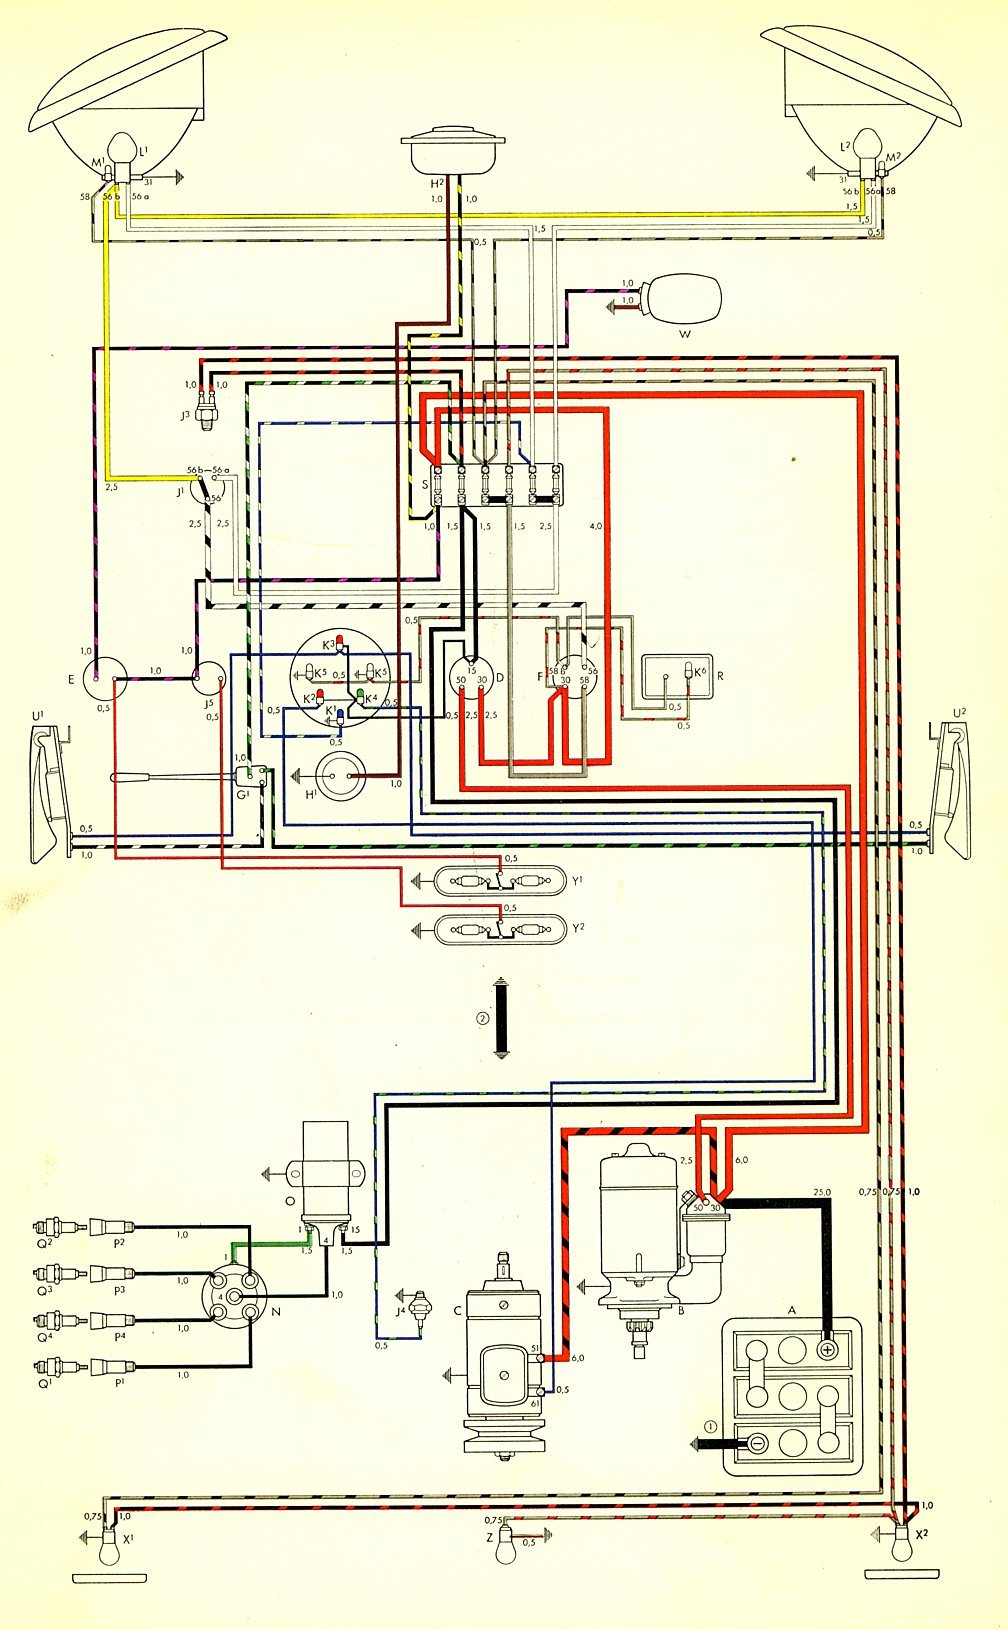 bus_59 1982 vw rabbit wiring harness 1981 volkswagen rabbit interior Wiring Harness Diagram at fashall.co